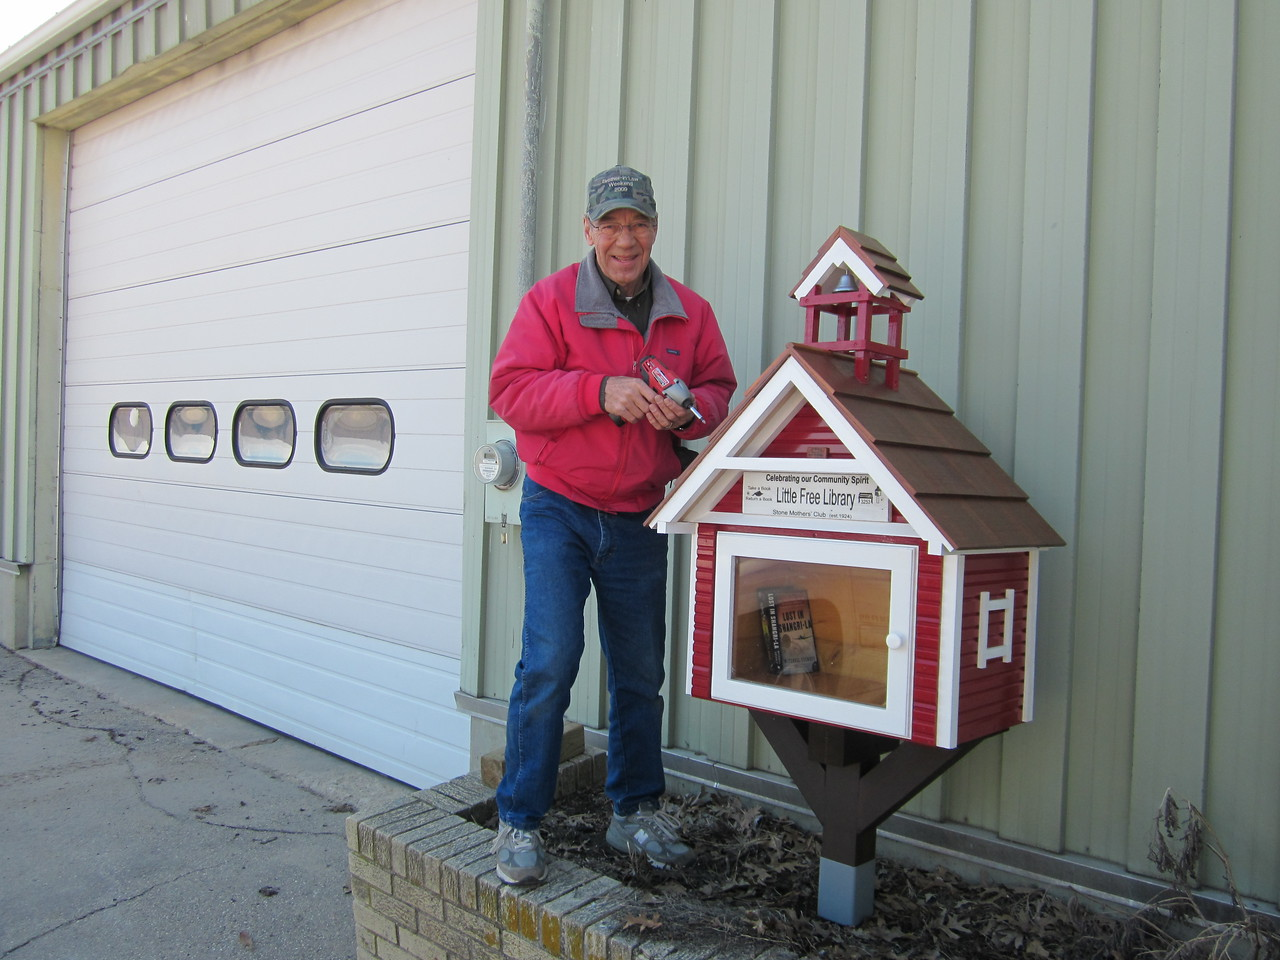 """April 2012 INSTALLED THE """"LITTLE-FREE-LIBRARY"""" AT OUR TOWN HALL, REQUESTED BY THE LOCAL """"STONE MOTHERS' CLUB"""""""